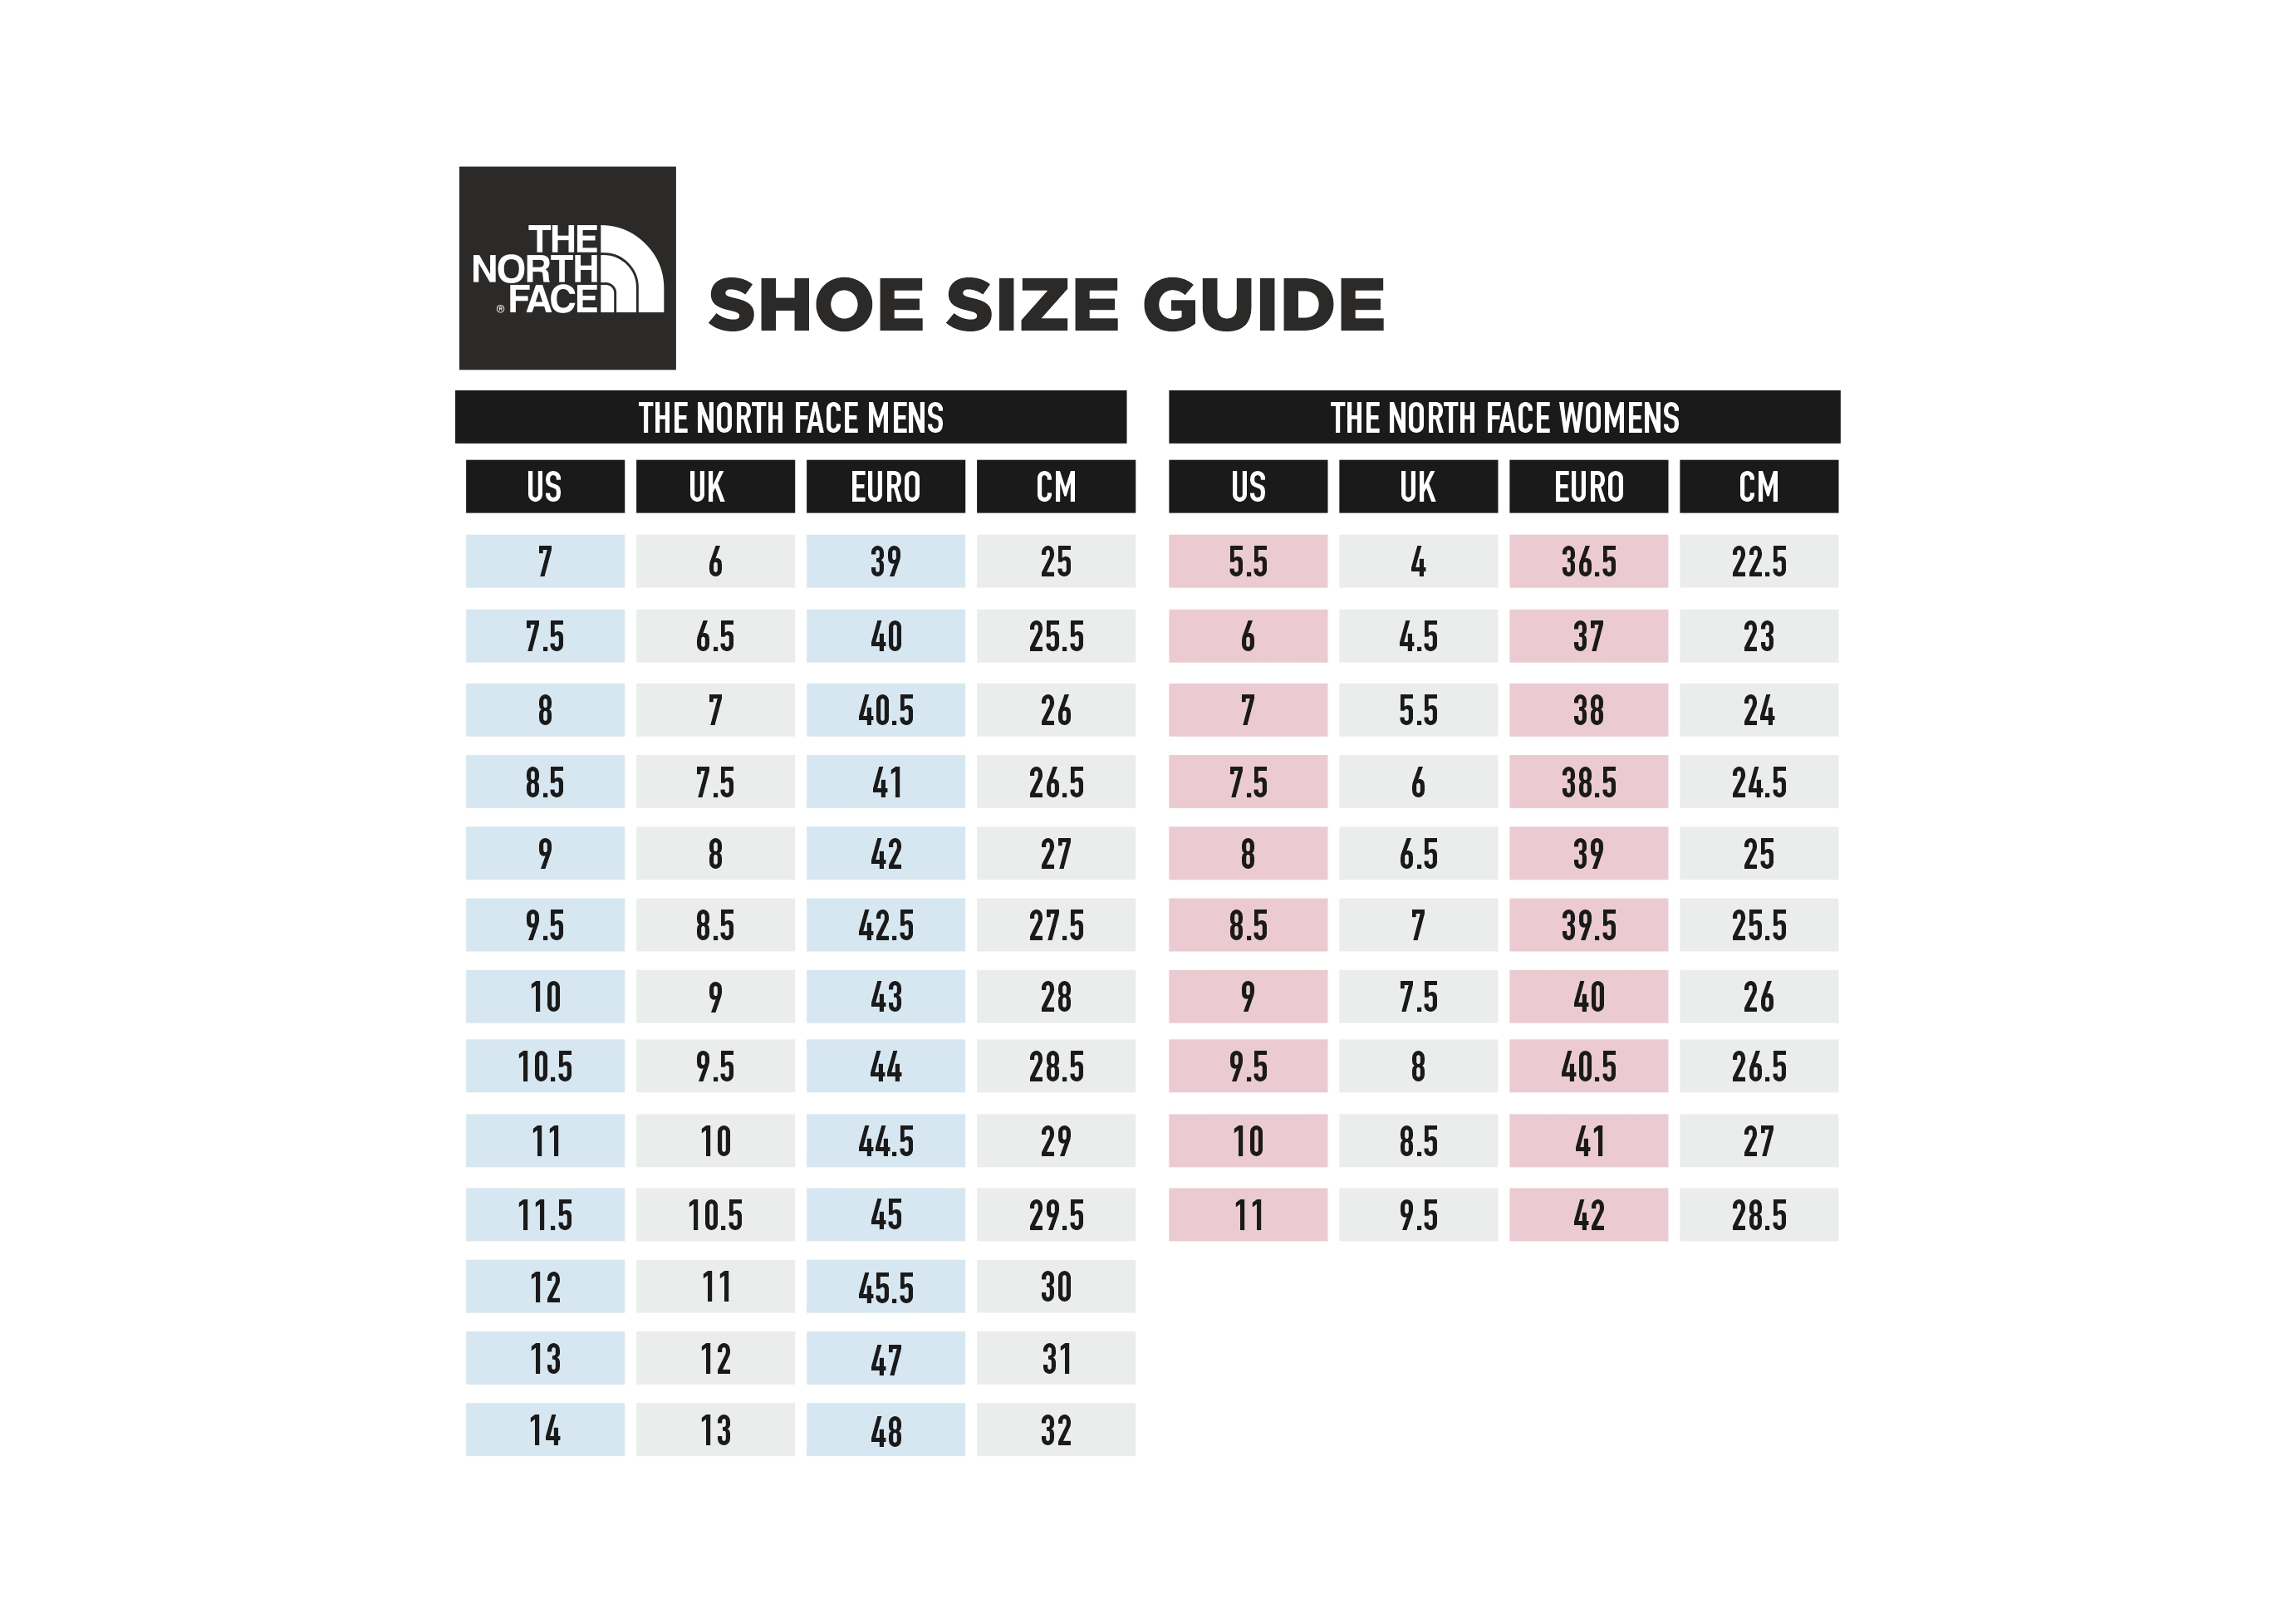 The North Face Shoe Size Guide